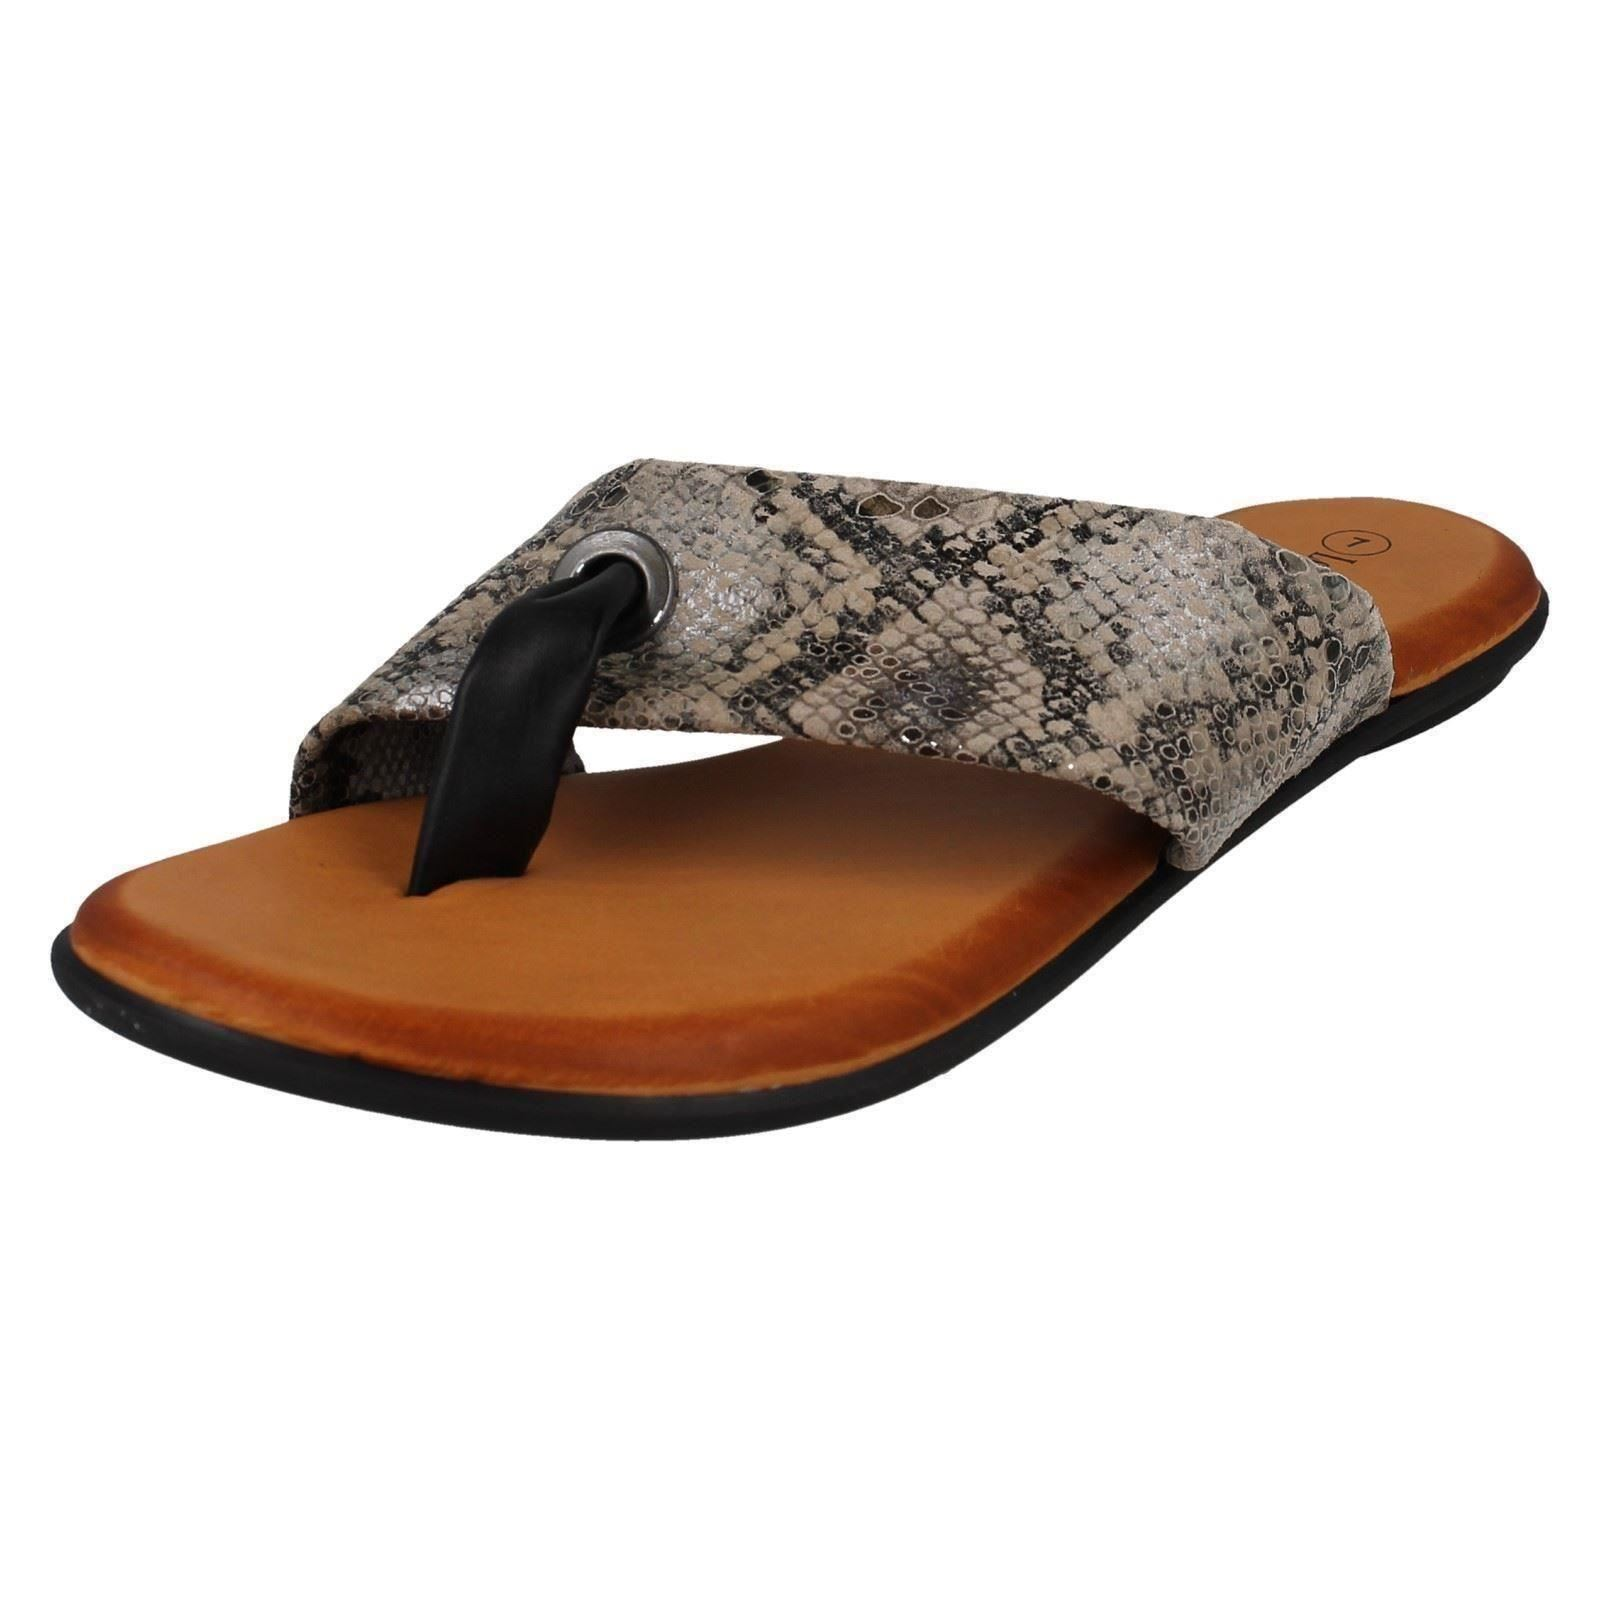 Ladies Style eBay Sandals F0R0128 Leather Collection Post Toe rgwqzrxZ